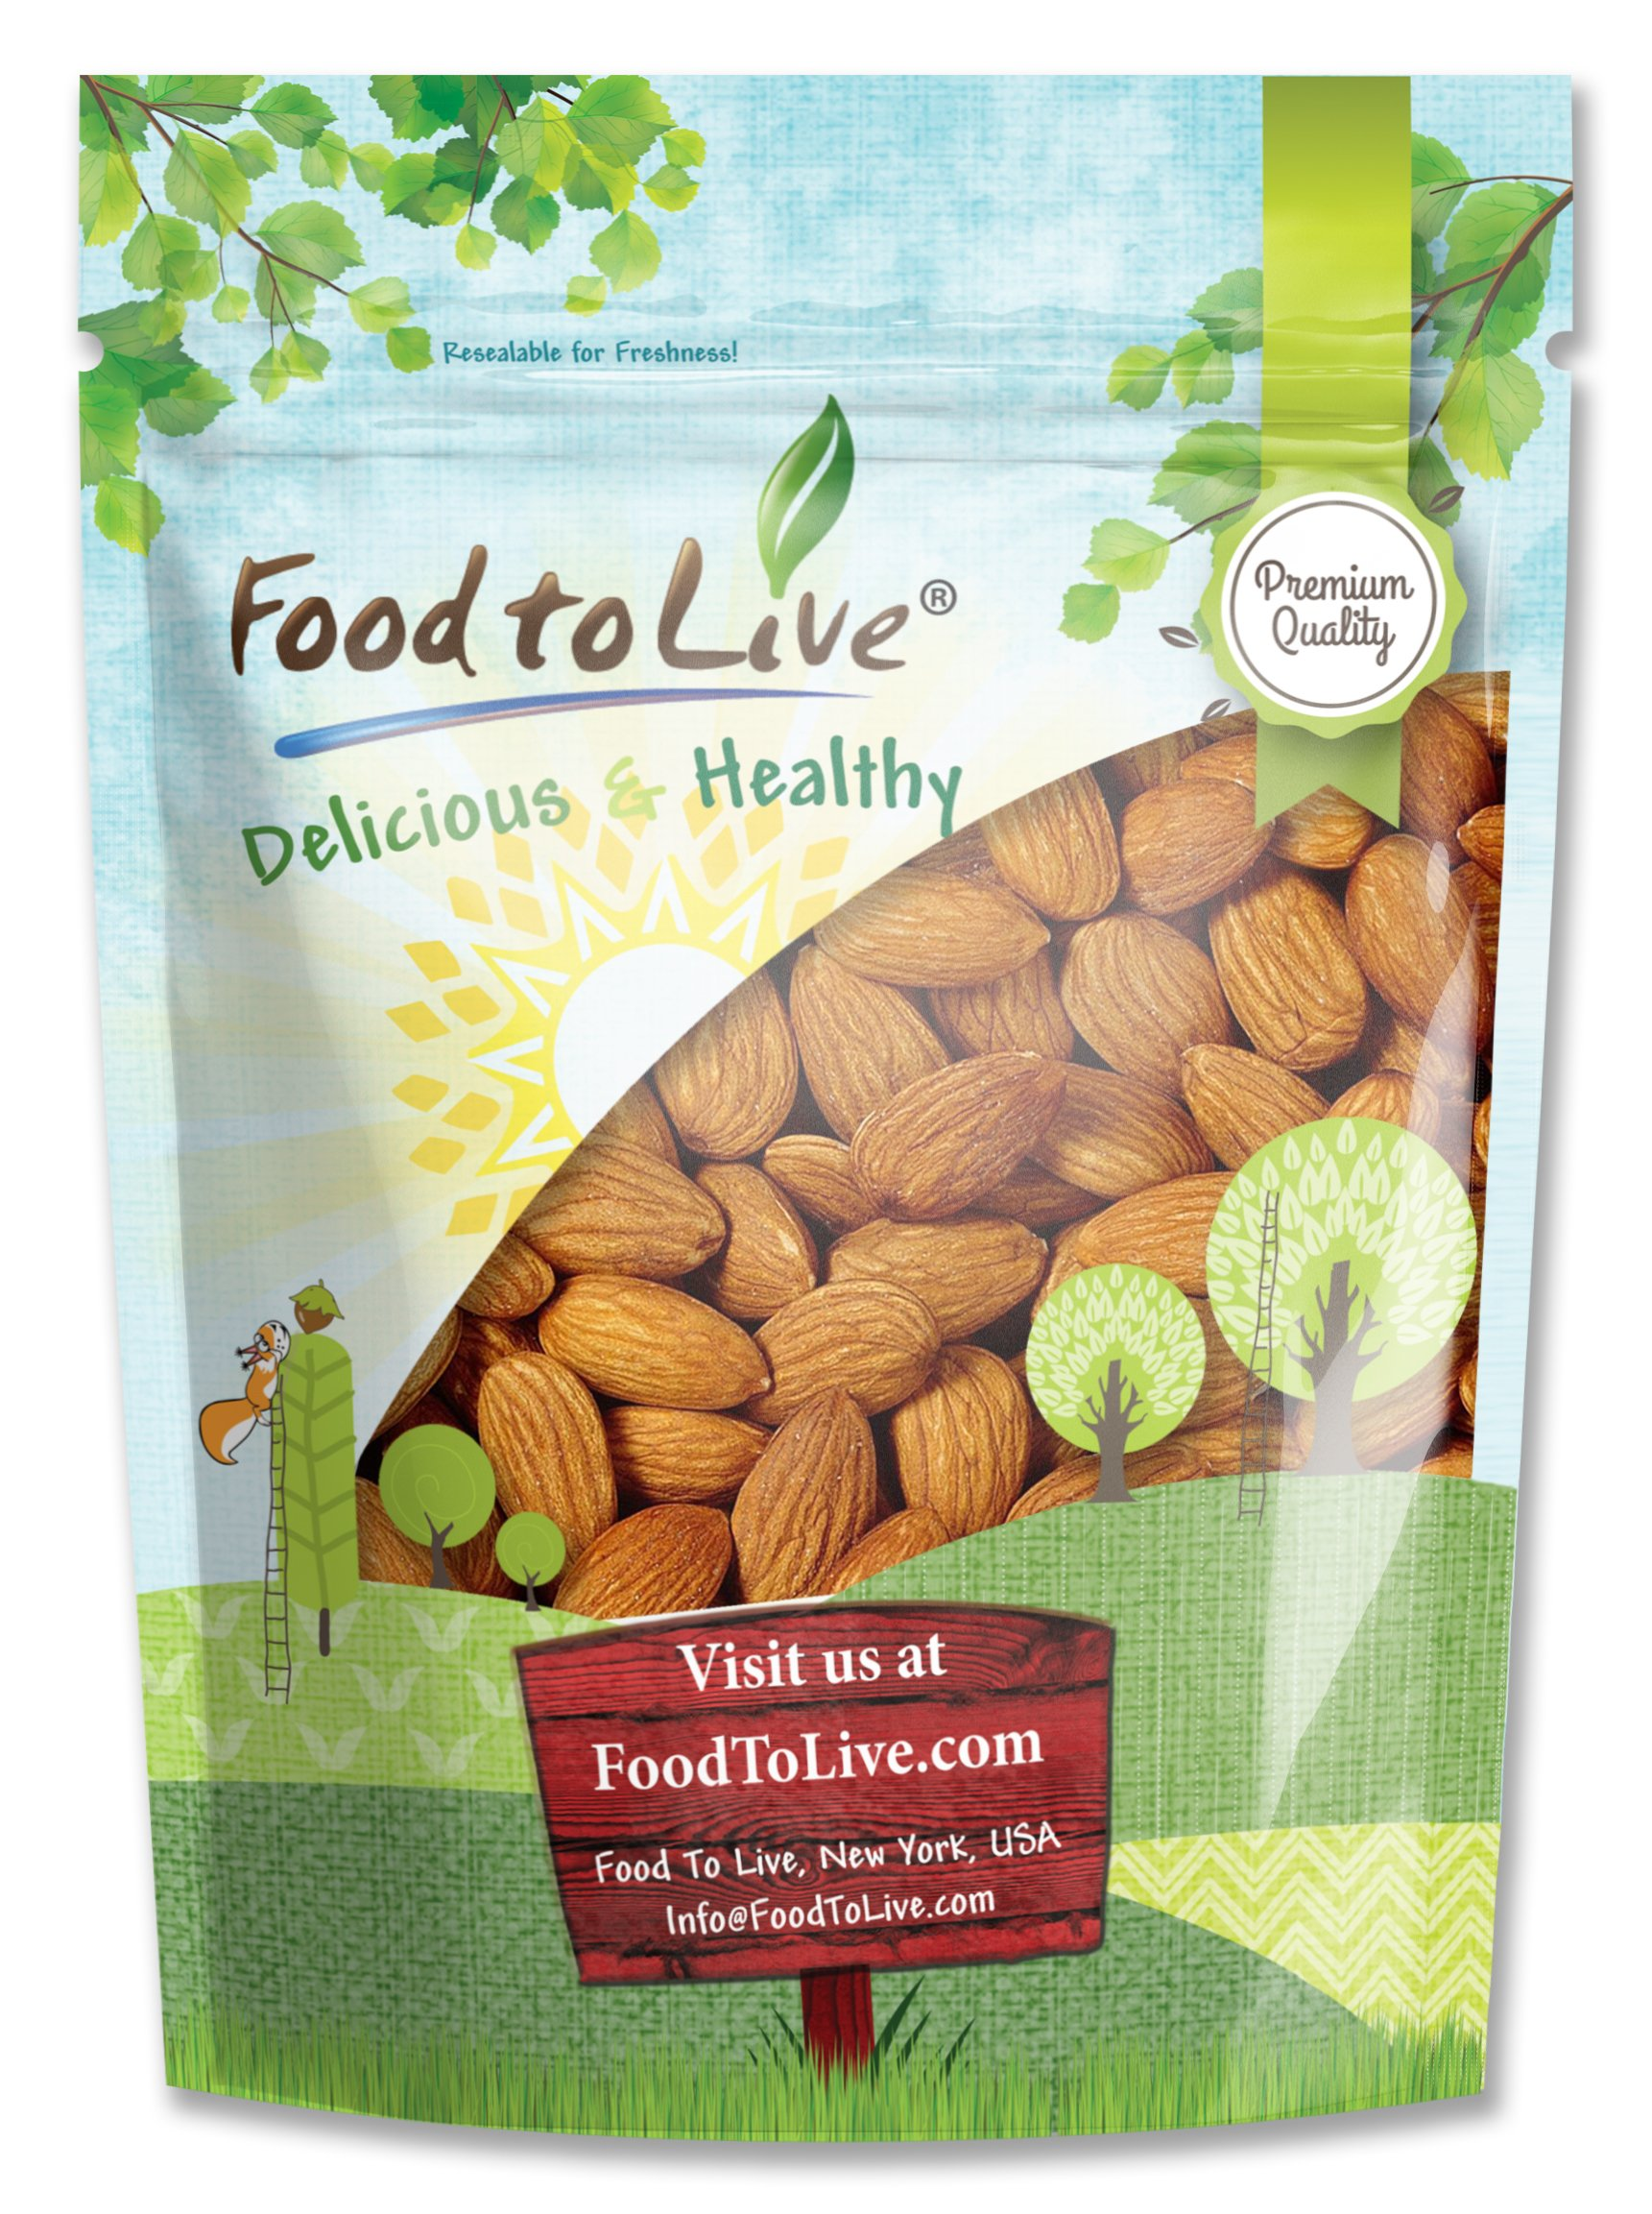 Raw Almonds By Food to Live (Whole, Shelled, Unsalted, Bulk, Kosher) — 8 Ounces